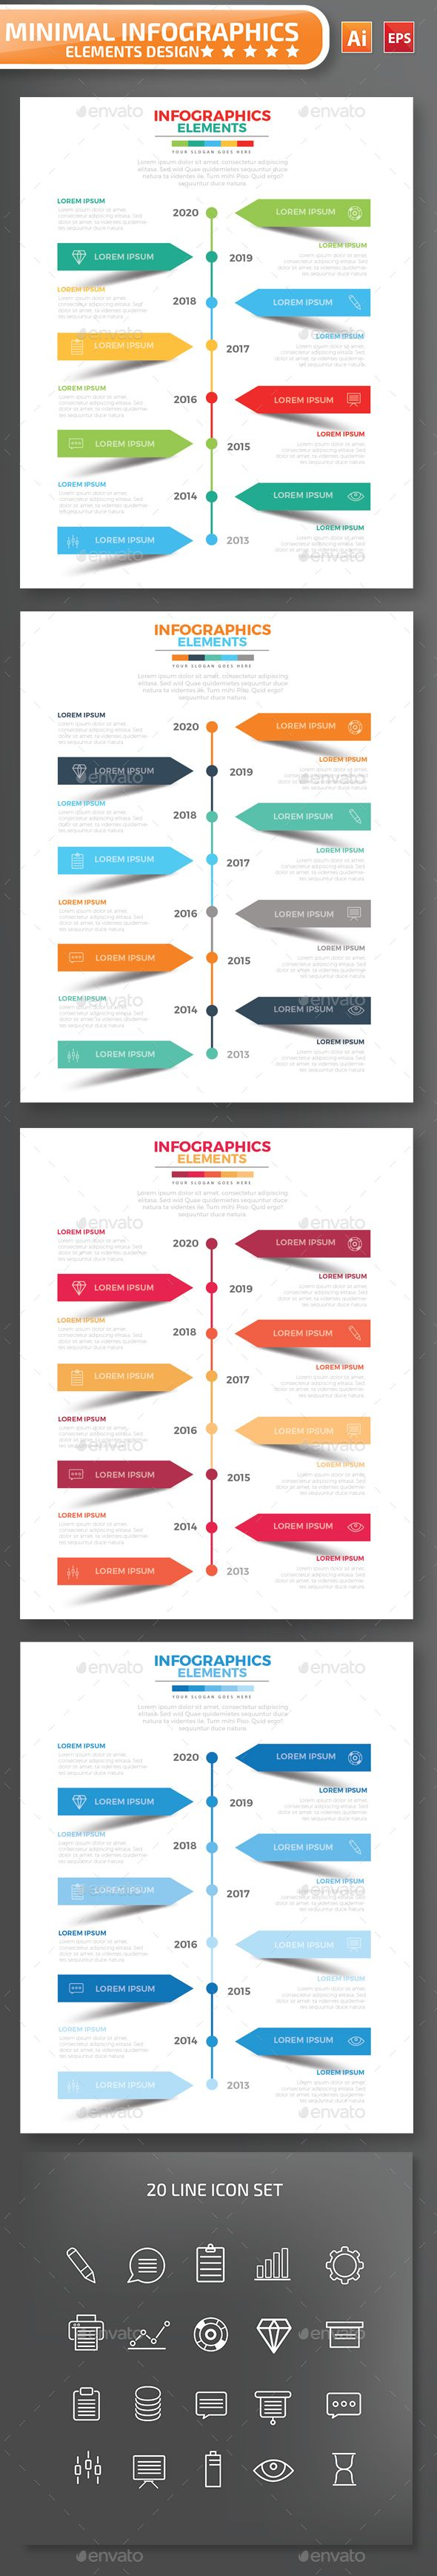 13 best aeµ c images on pinterest info graphics infographic